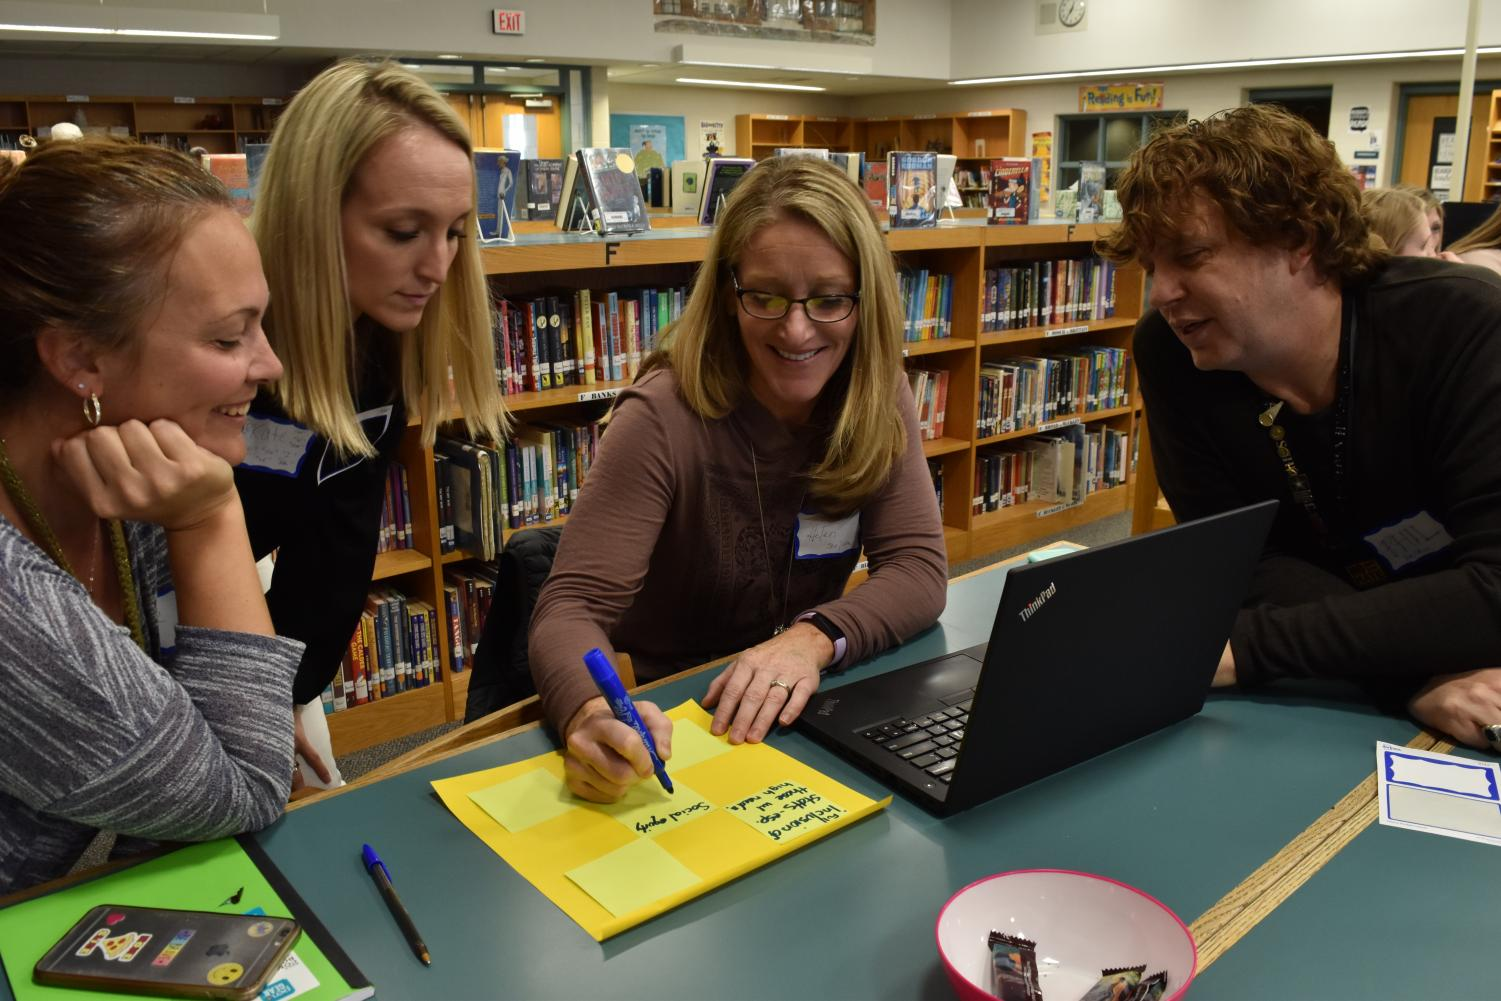 Teachers spent the in-service day attending previously signed-up-for sessions, meant to educate them in several topics that affect students and teachers.